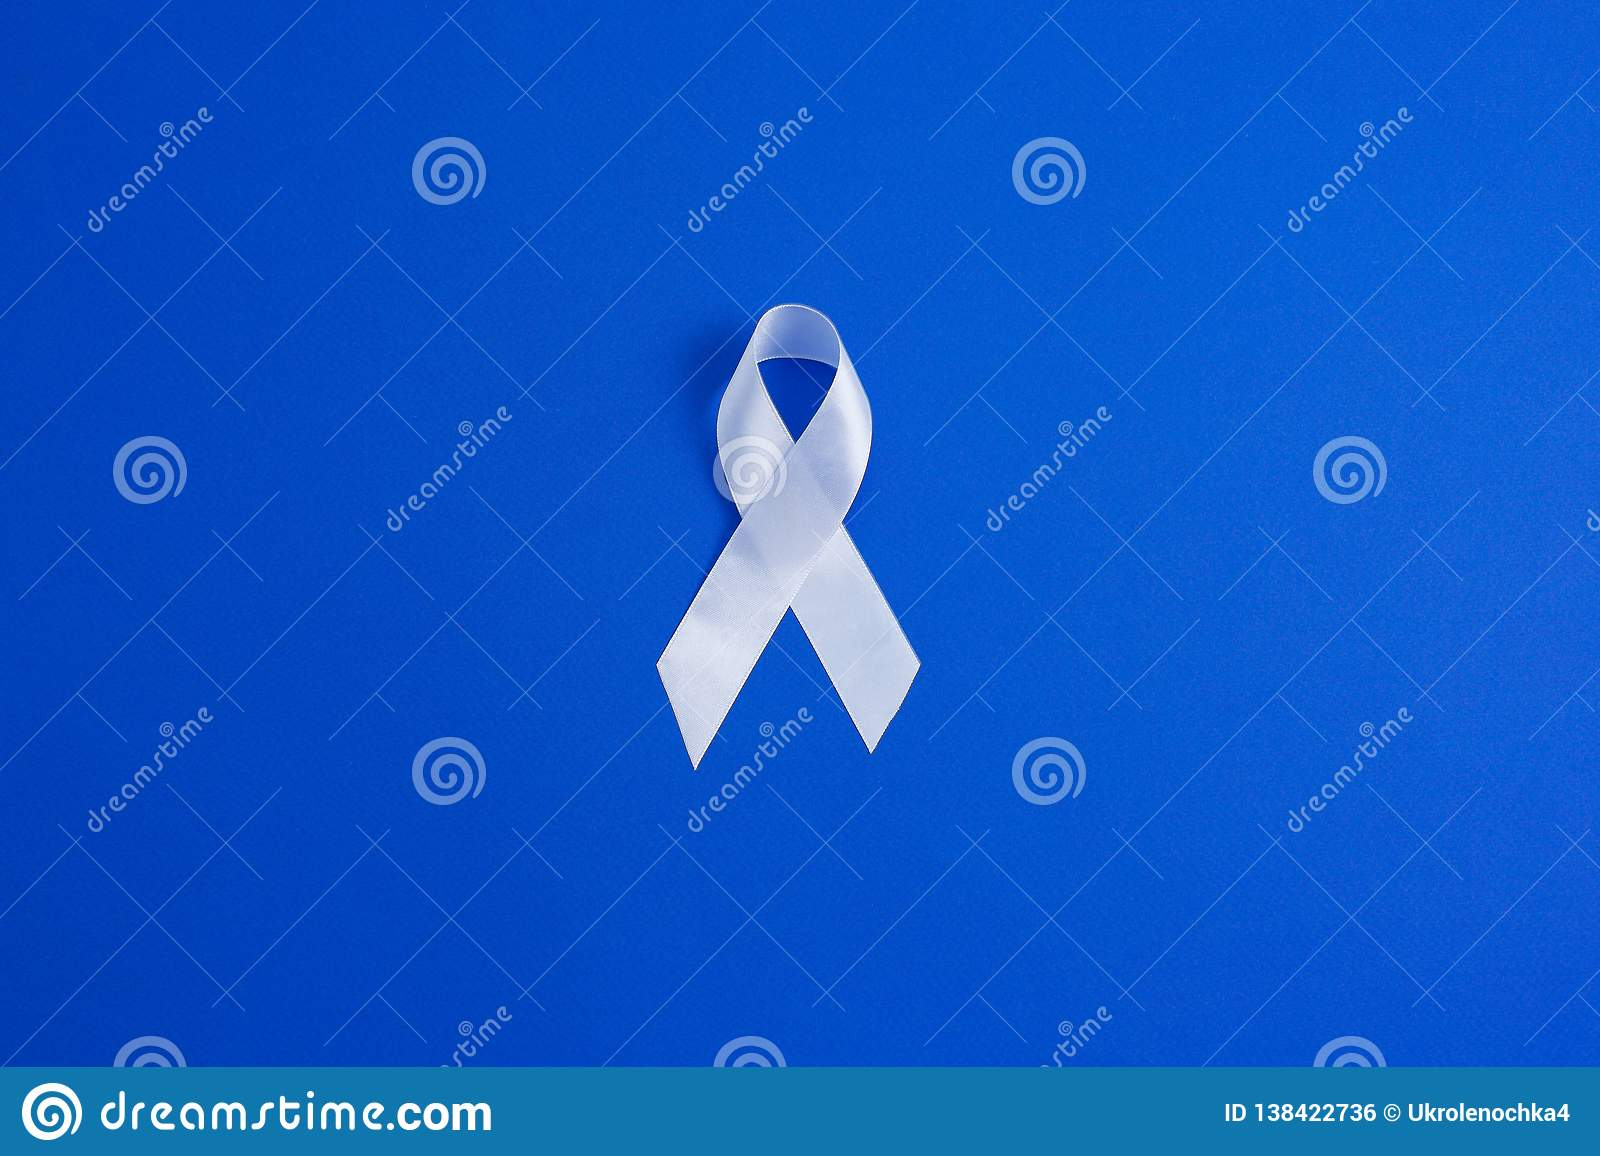 White color ribbon for raising awareness on Lung cancer and Multiple Sclerosis and international day of non-violence against women